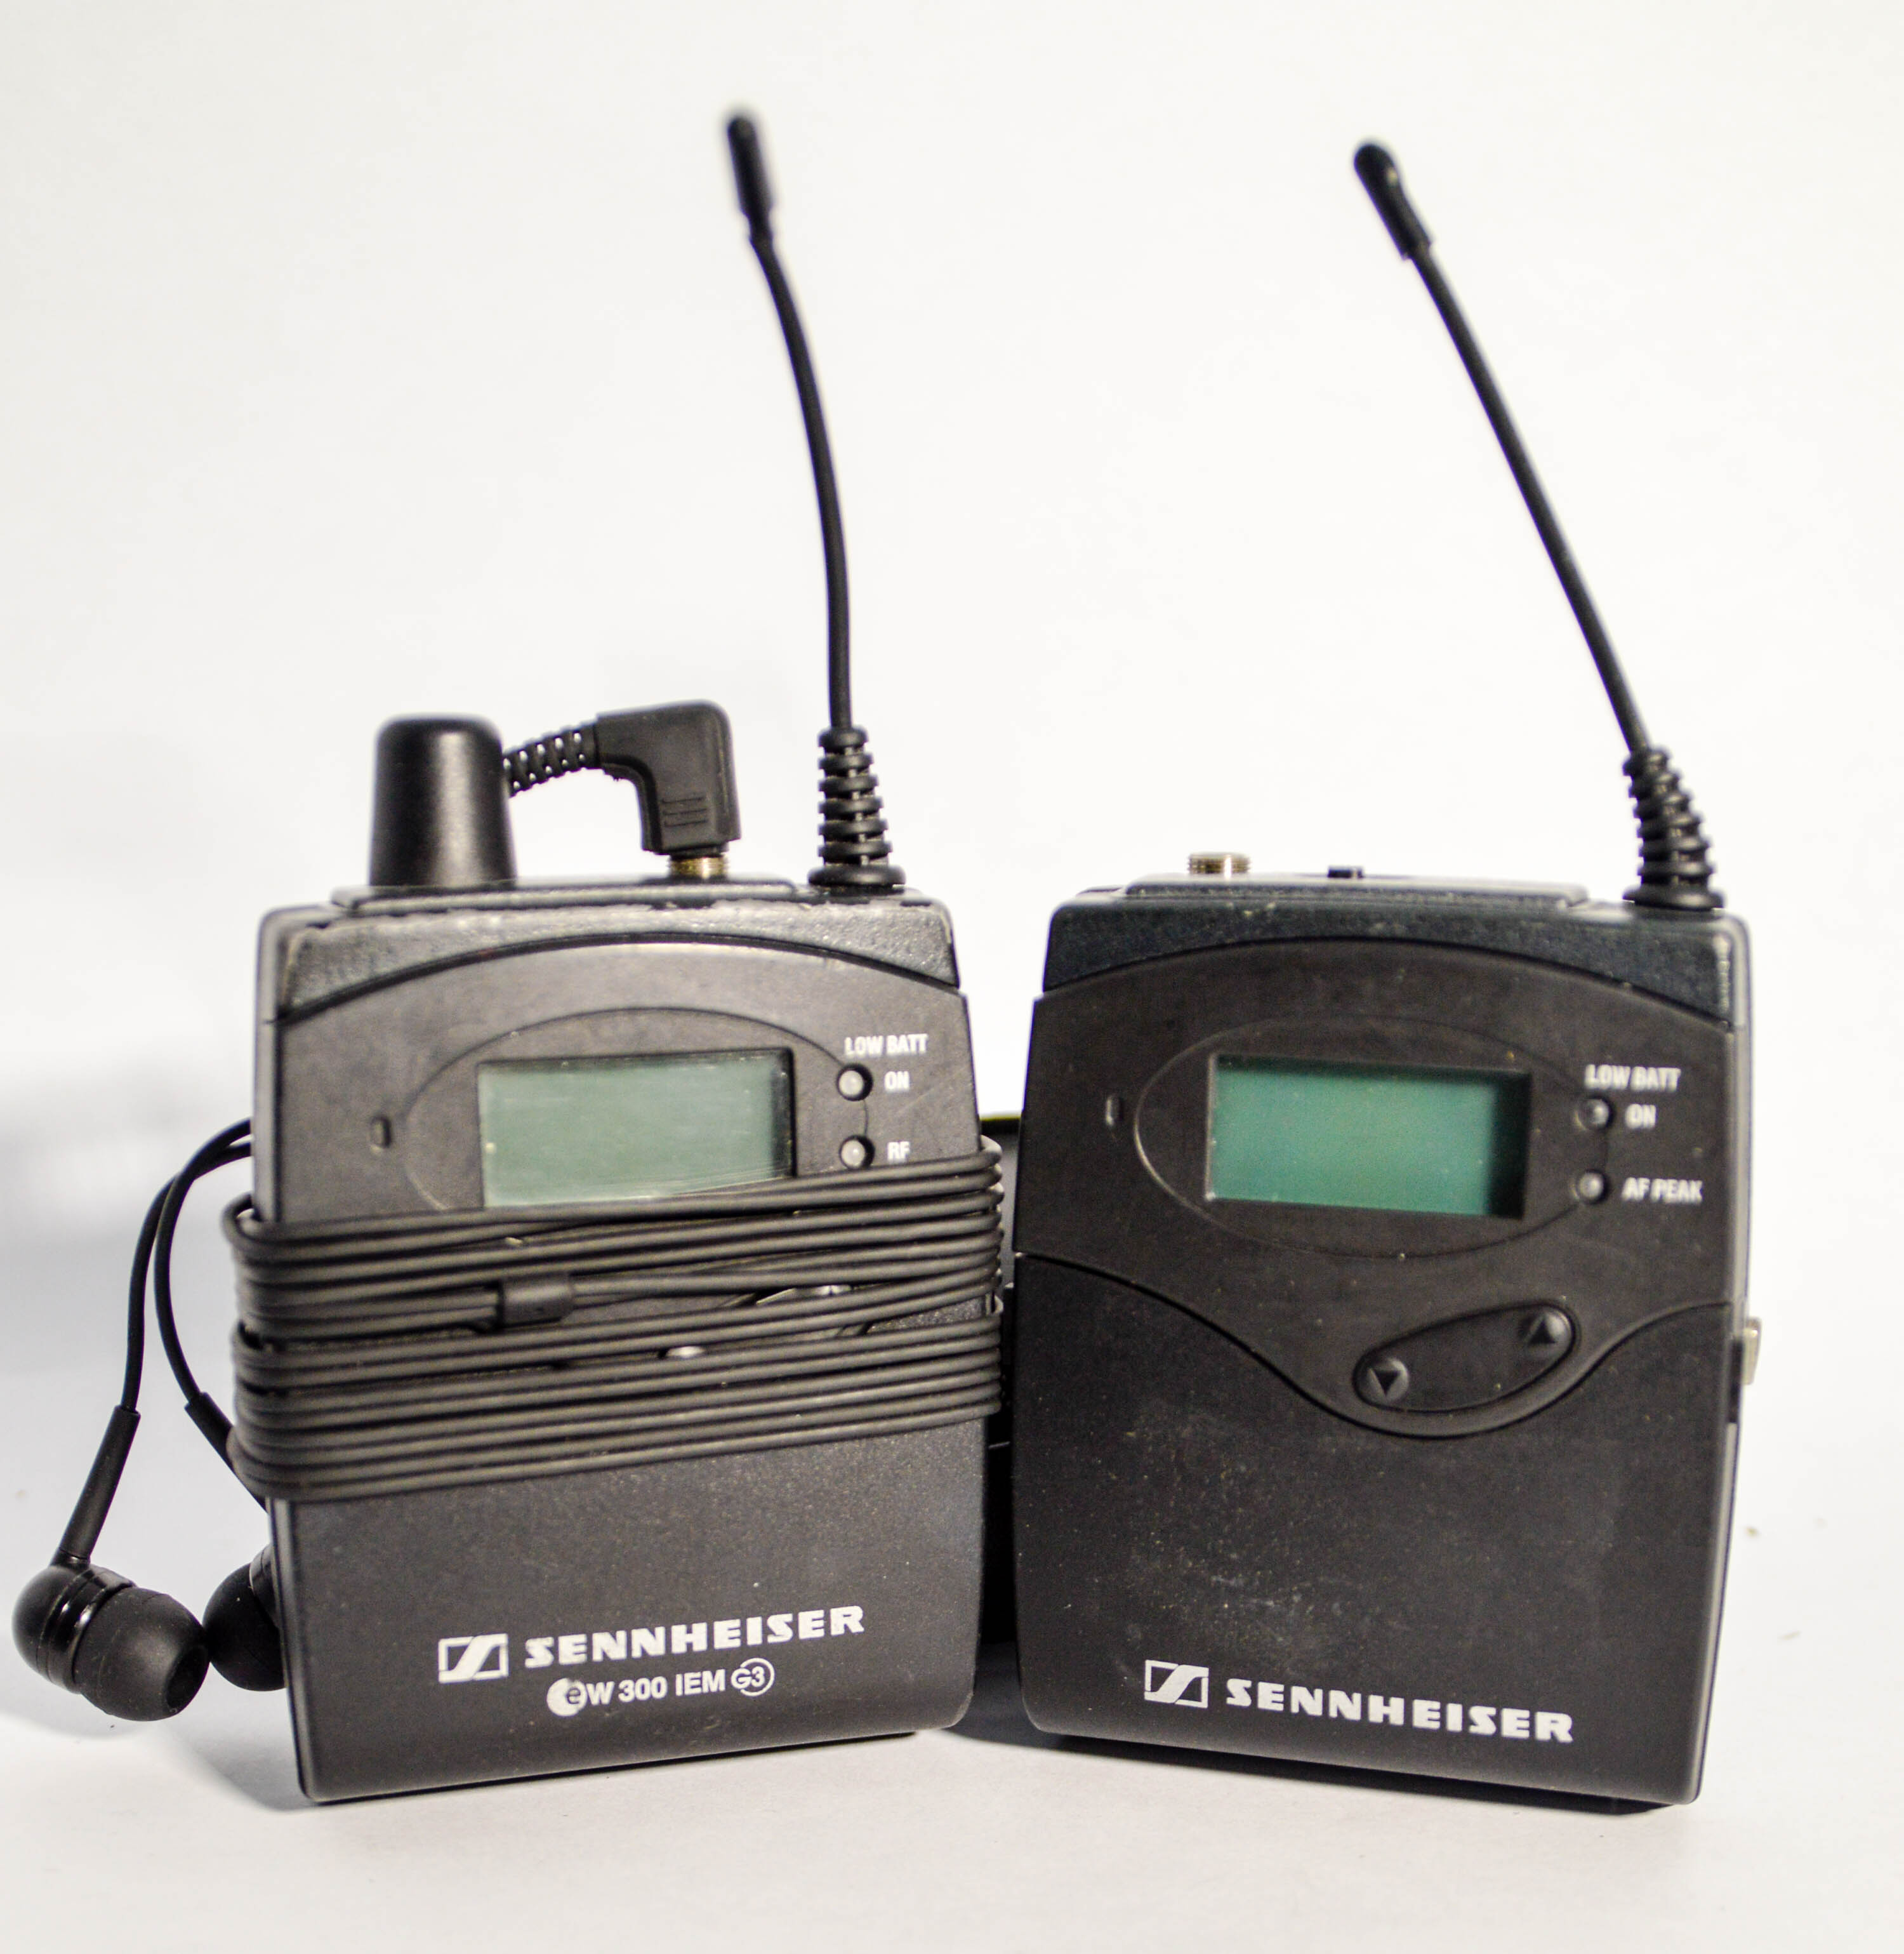 Sennheiser G3 Transmitter Receiver Set, Electronics, Audio